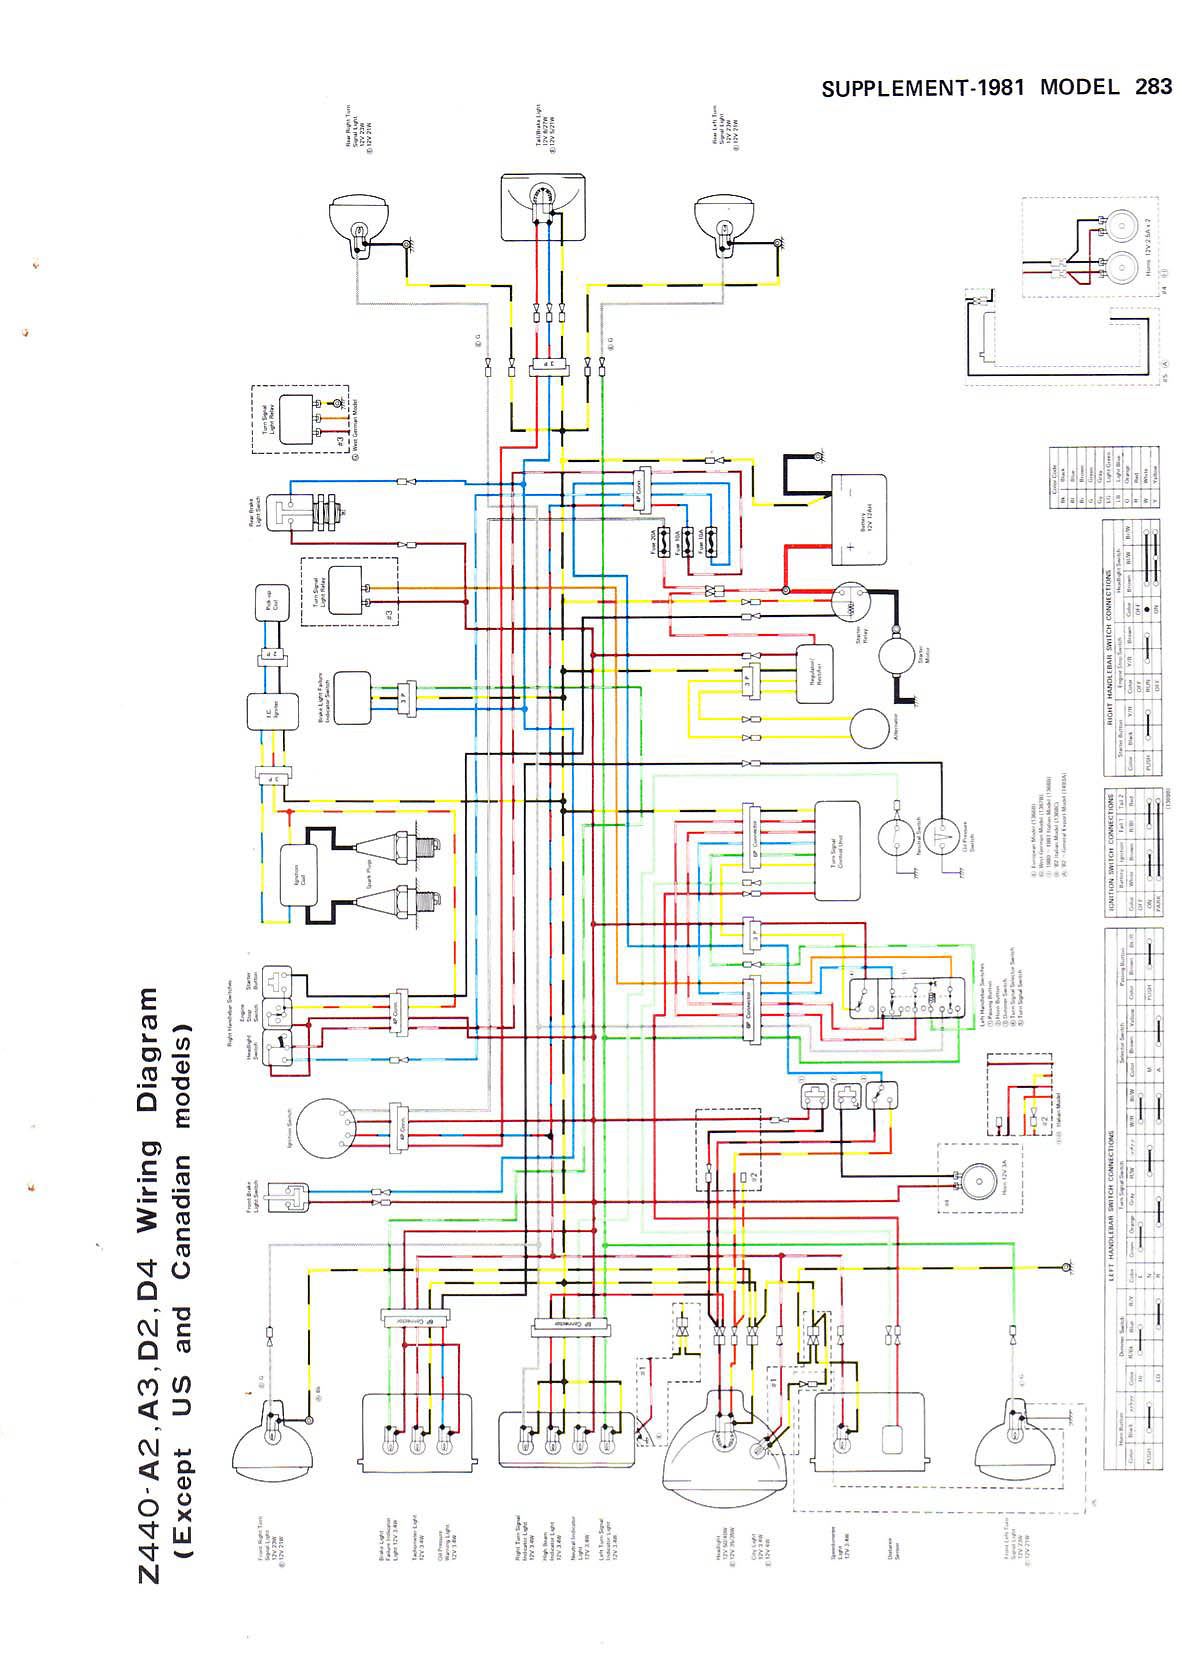 Kawasaki KZ 440 %2780 a %2782 Service Manual_Page_280 index of kz440 wiring diagrams 1980 kawasaki 440 ltd wiring diagram at bayanpartner.co